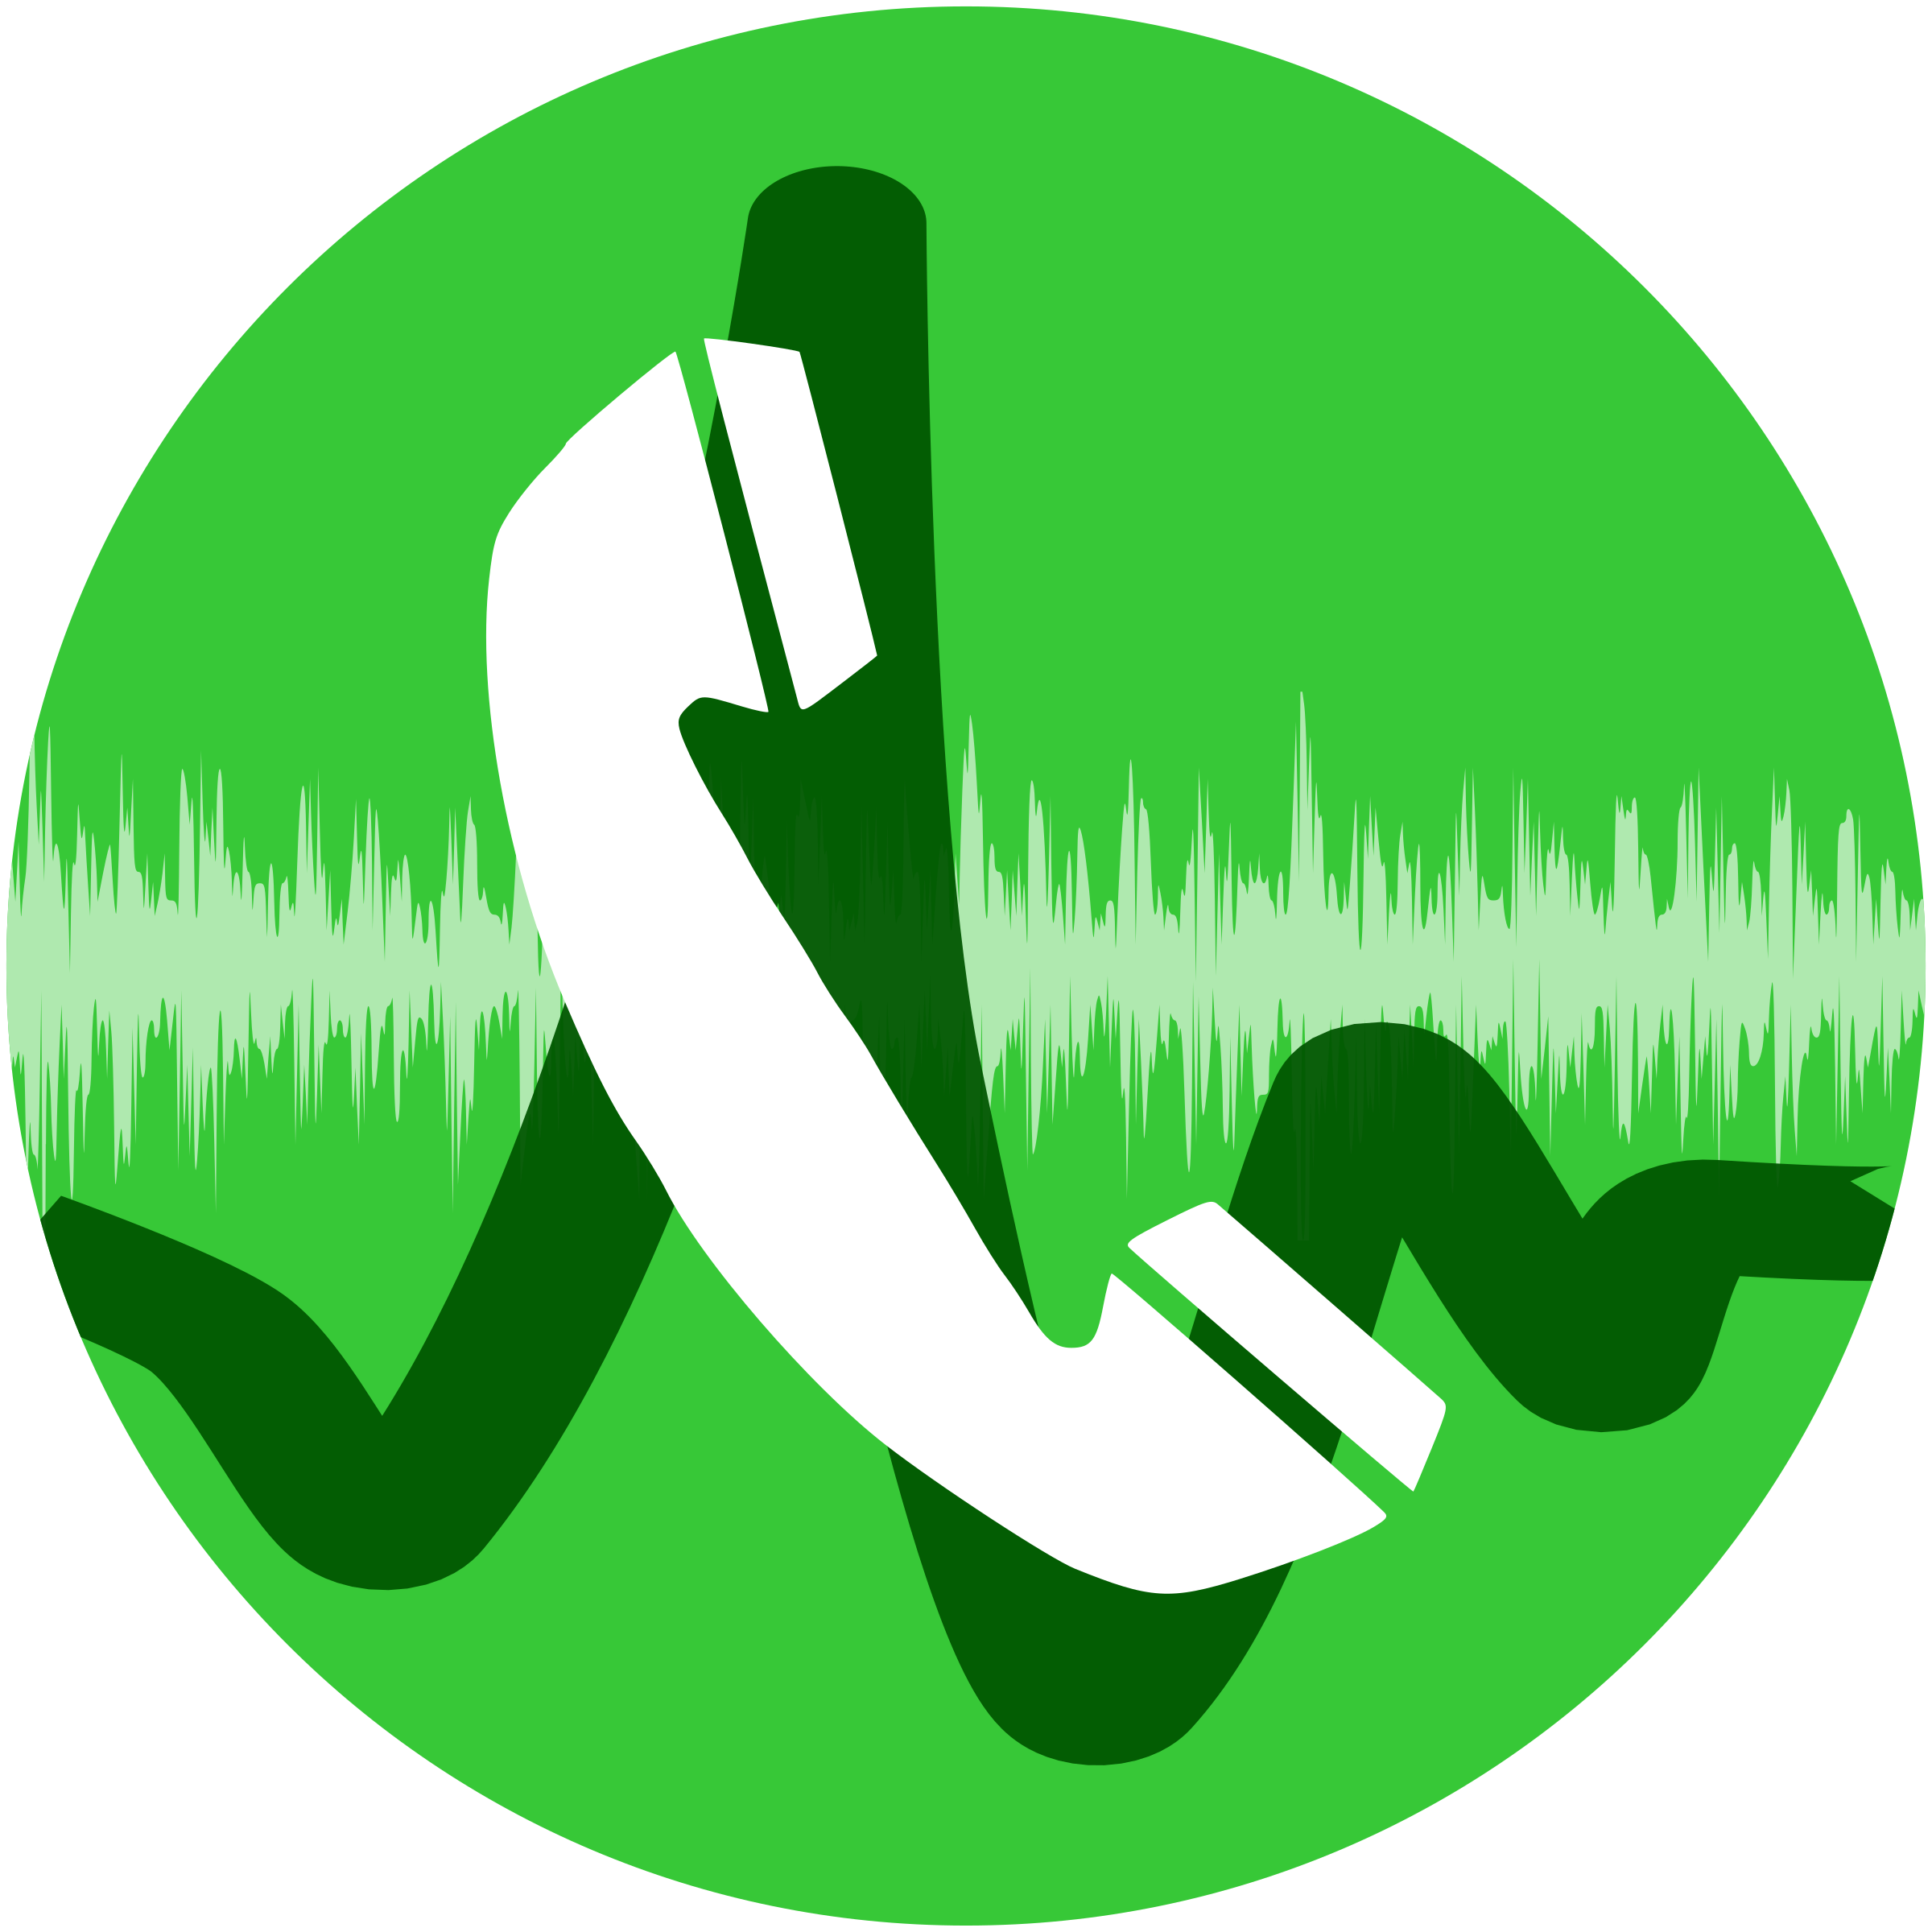 Phone call icon big. Telephone clipart sign